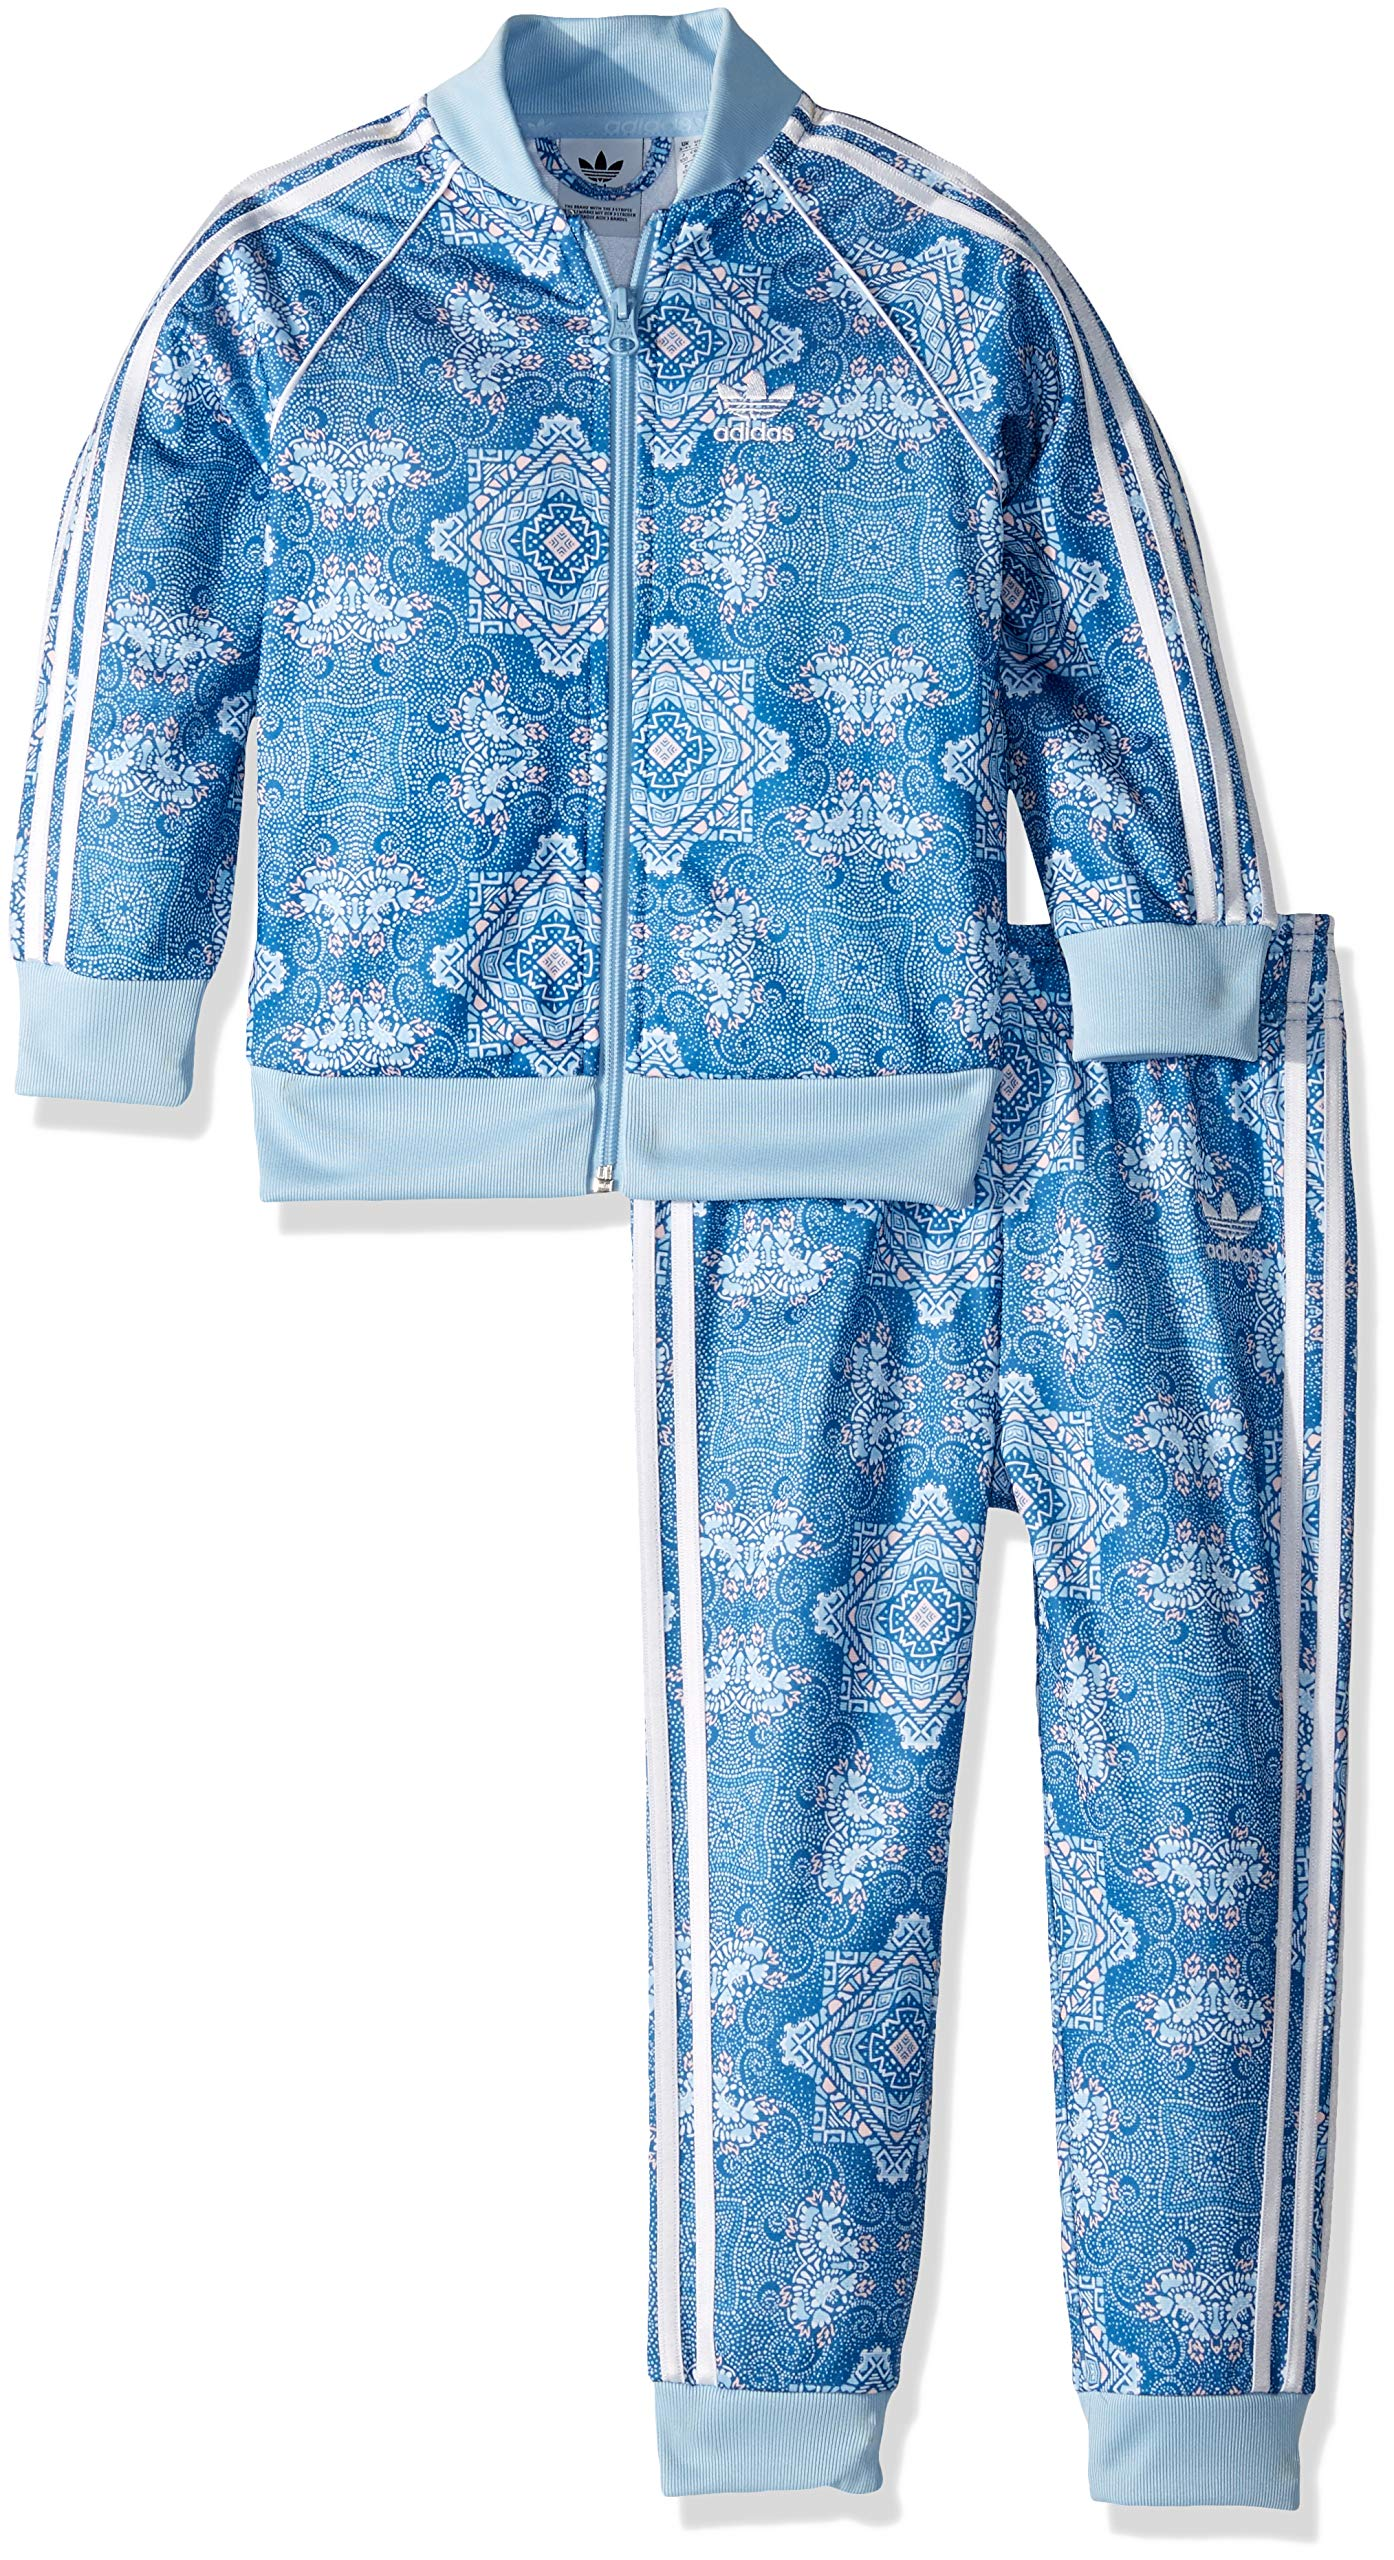 adidas Originals unisex-child Toddler Culture Clash SST Track Suit Set, multi 3T by adidas Originals